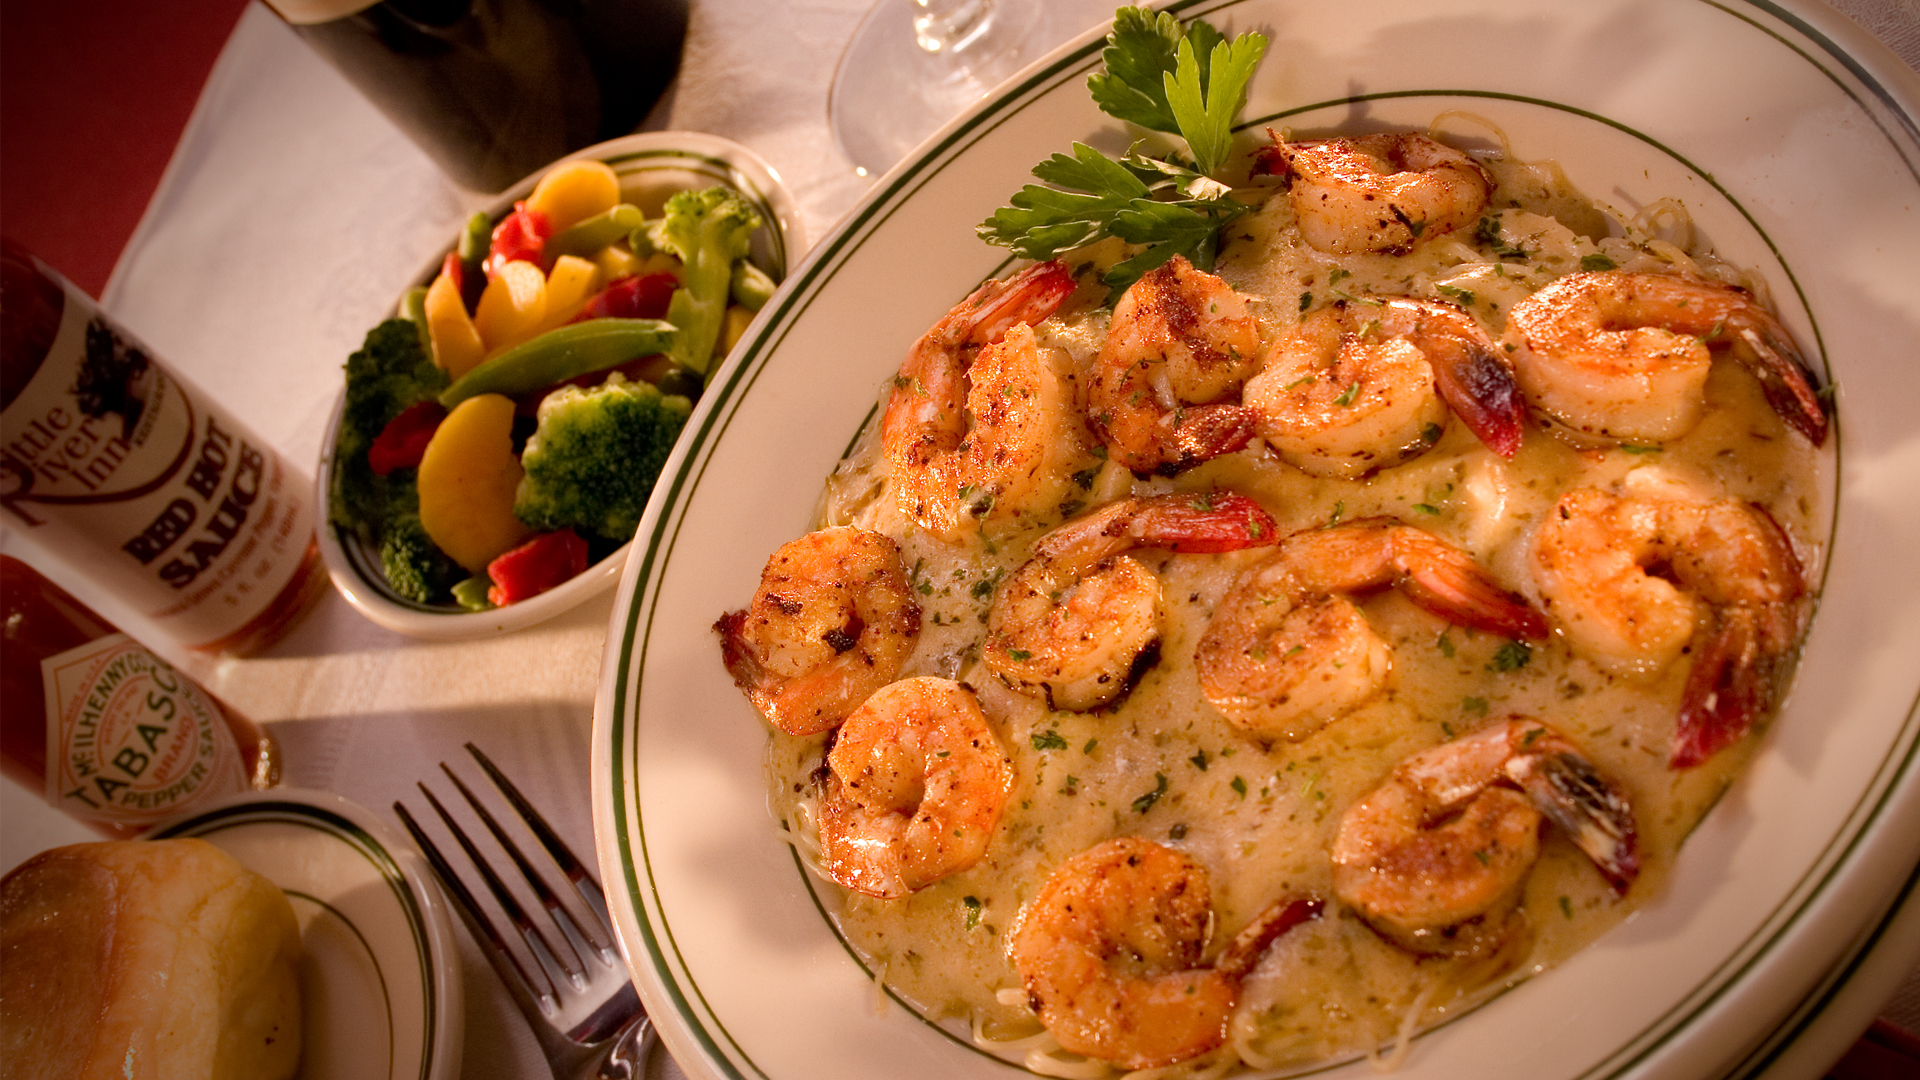 Premier Louisiana Seafood Restaurant For Over 87 Years